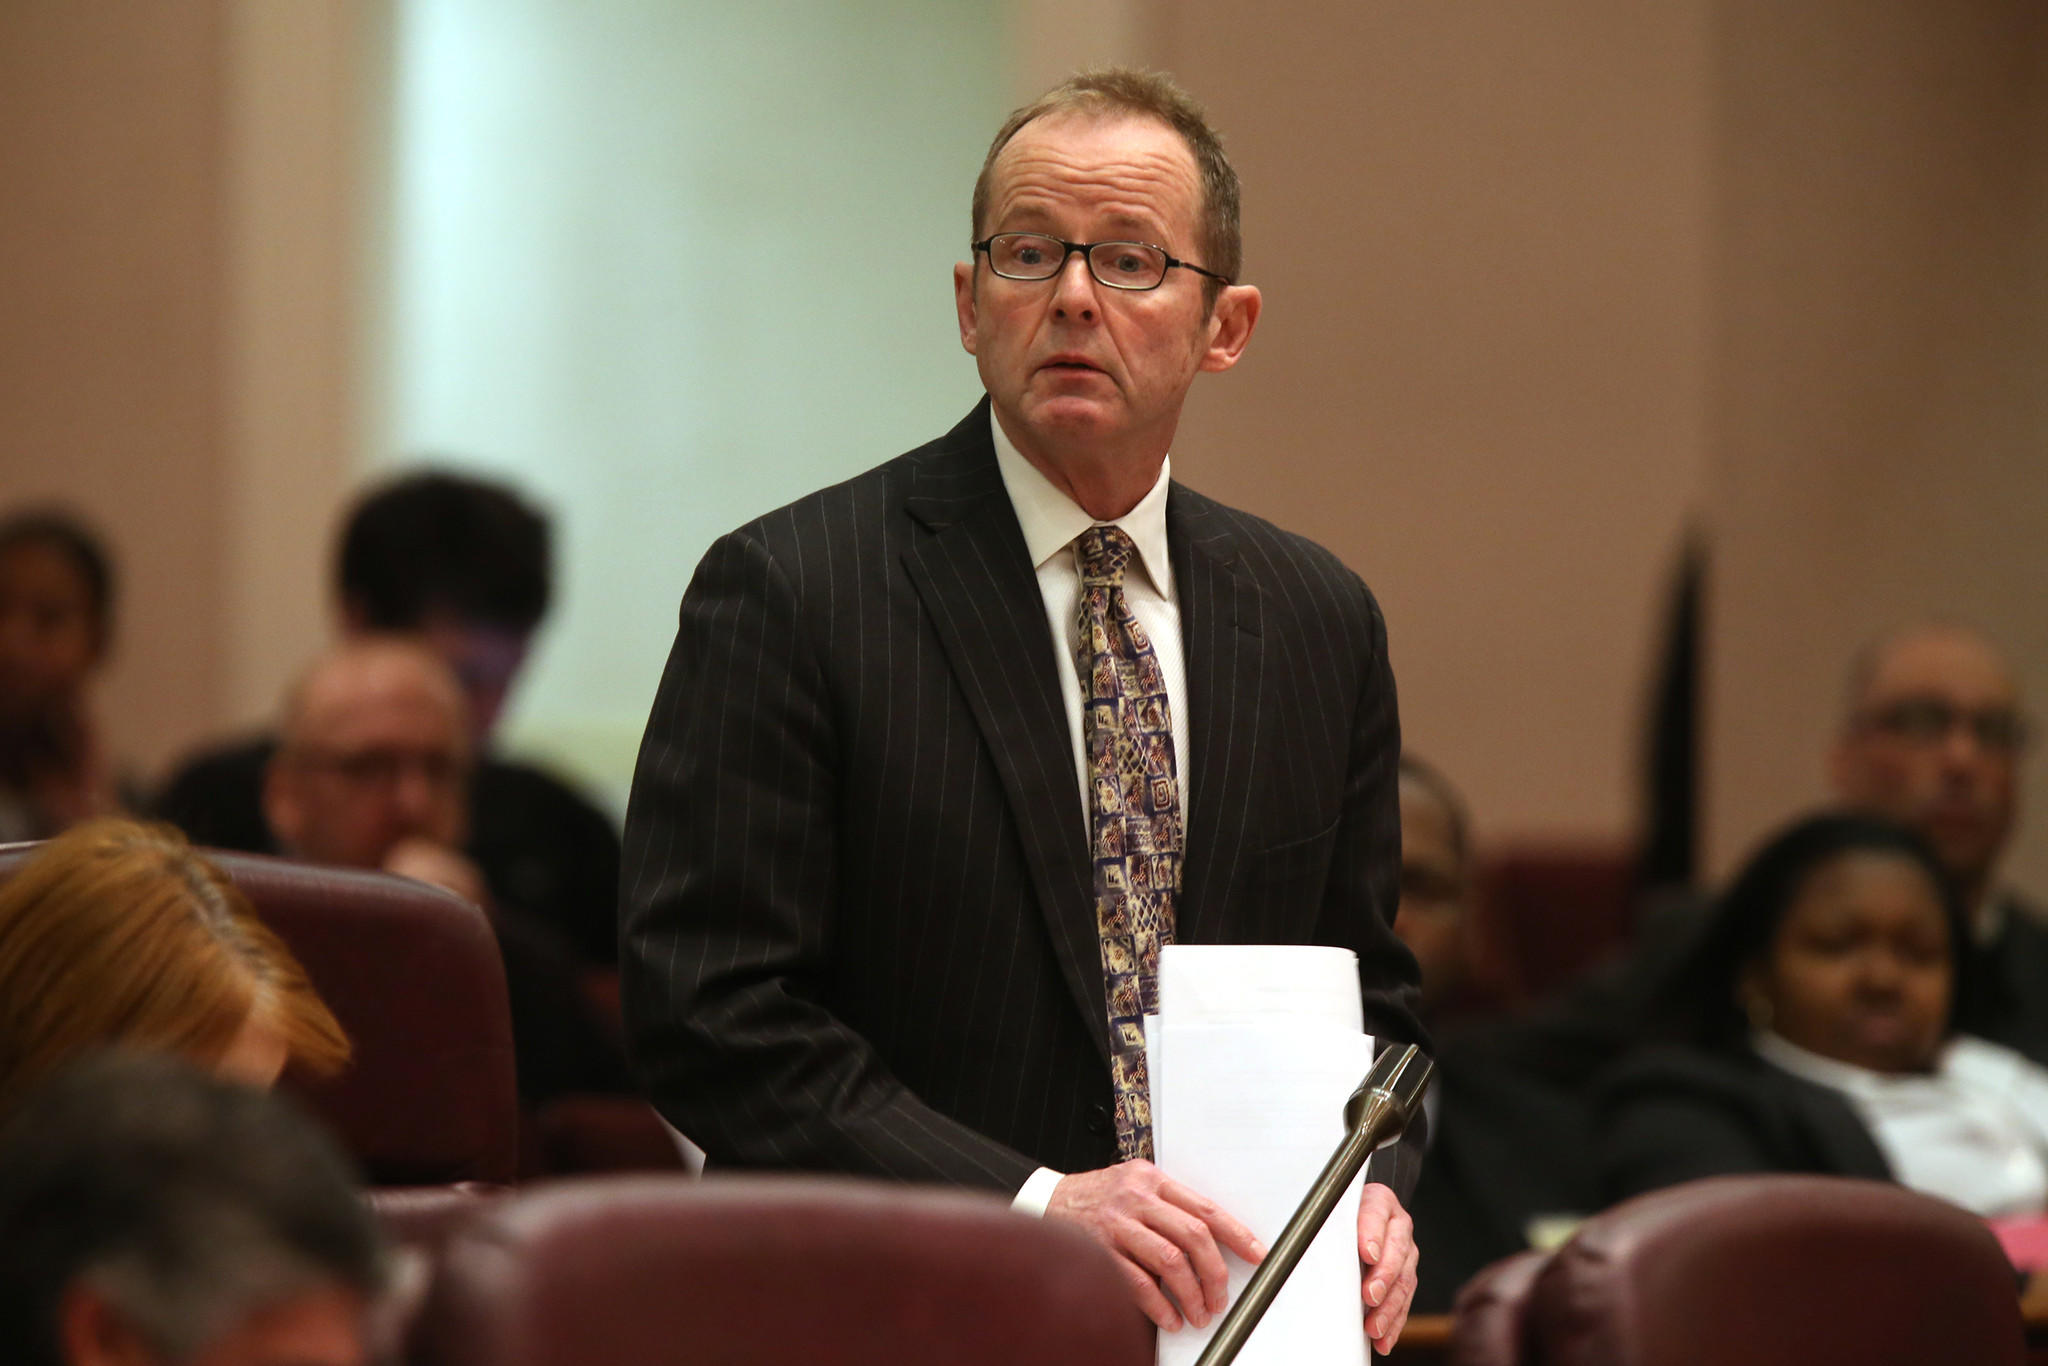 Ald. Thomas Tunney, 44th, speaks out on Wrigley Field plans during a city council meeting, Wednesday, Dec. 11, 2013.